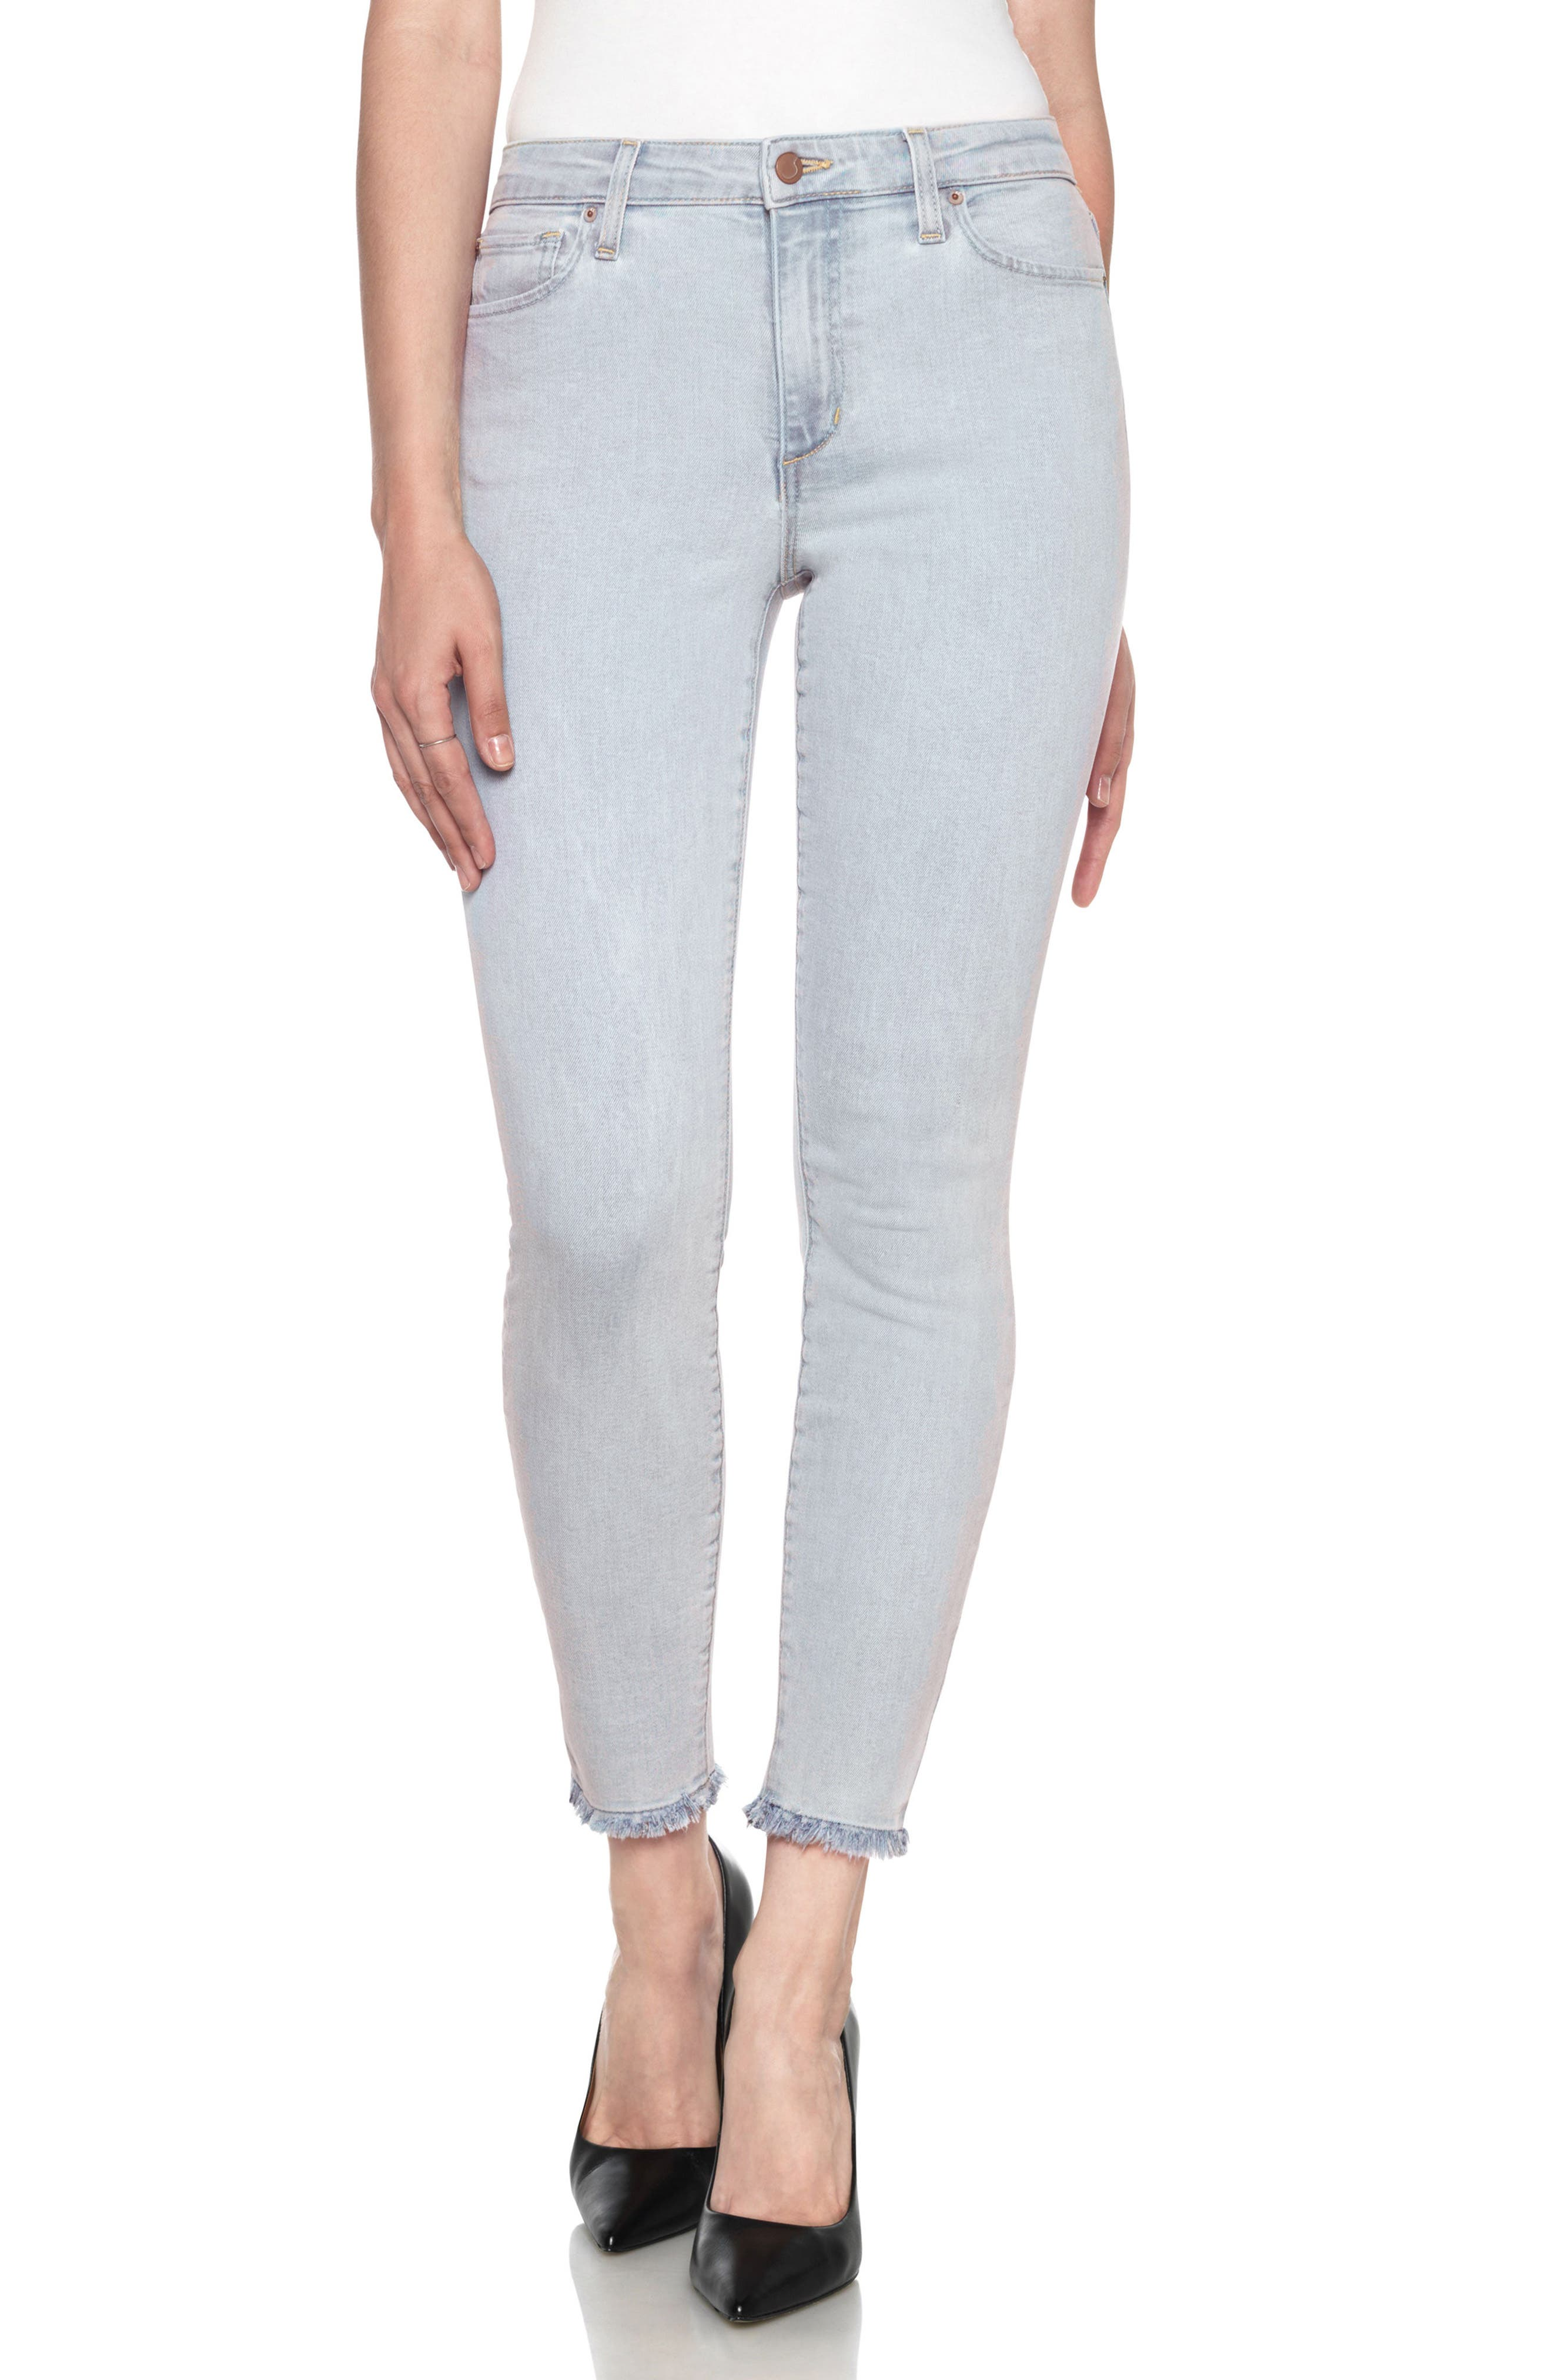 Alternate Image 1 Selected - Joe's Flawless - Charlie High Waist Ankle Skinny Jeans (Amada)